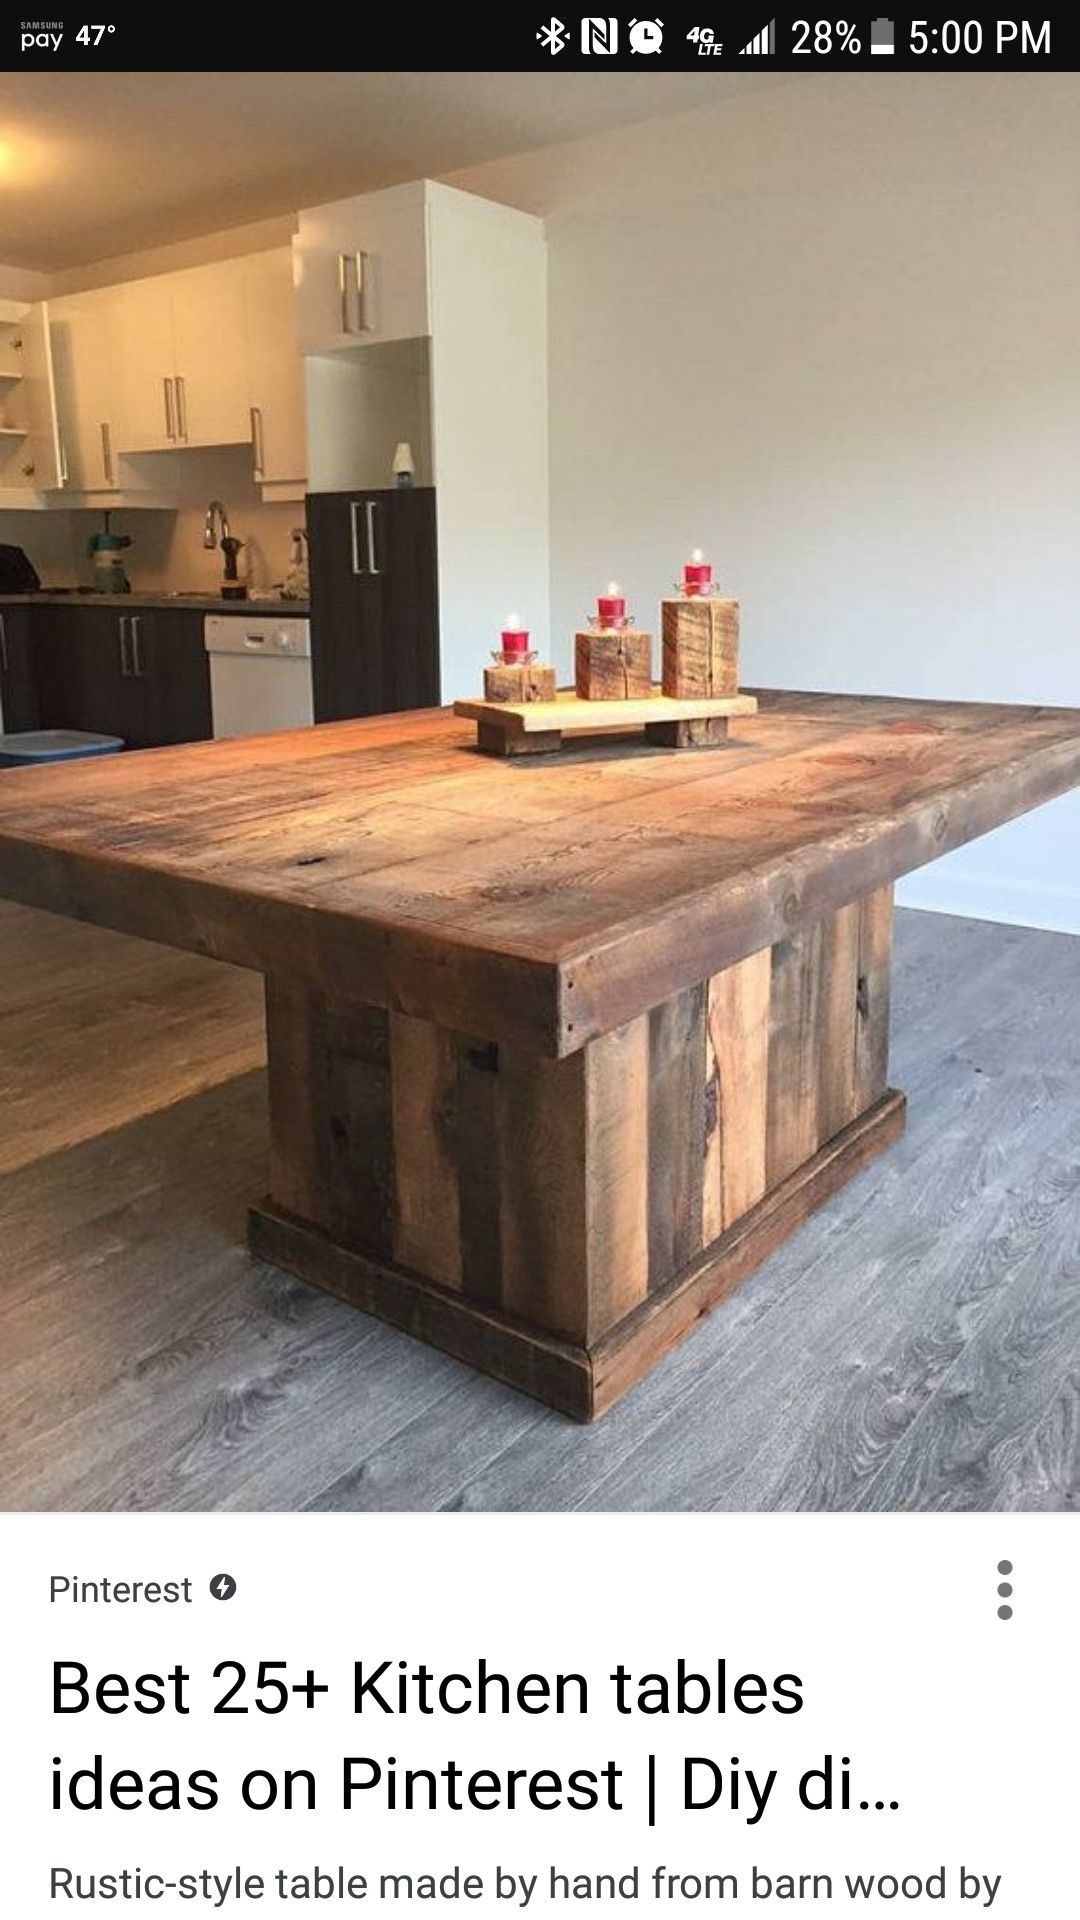 Kitchen Table Top Diy New Pin By Casey R On Dinner Rustic Furniture Farmhouse Table 7426 3